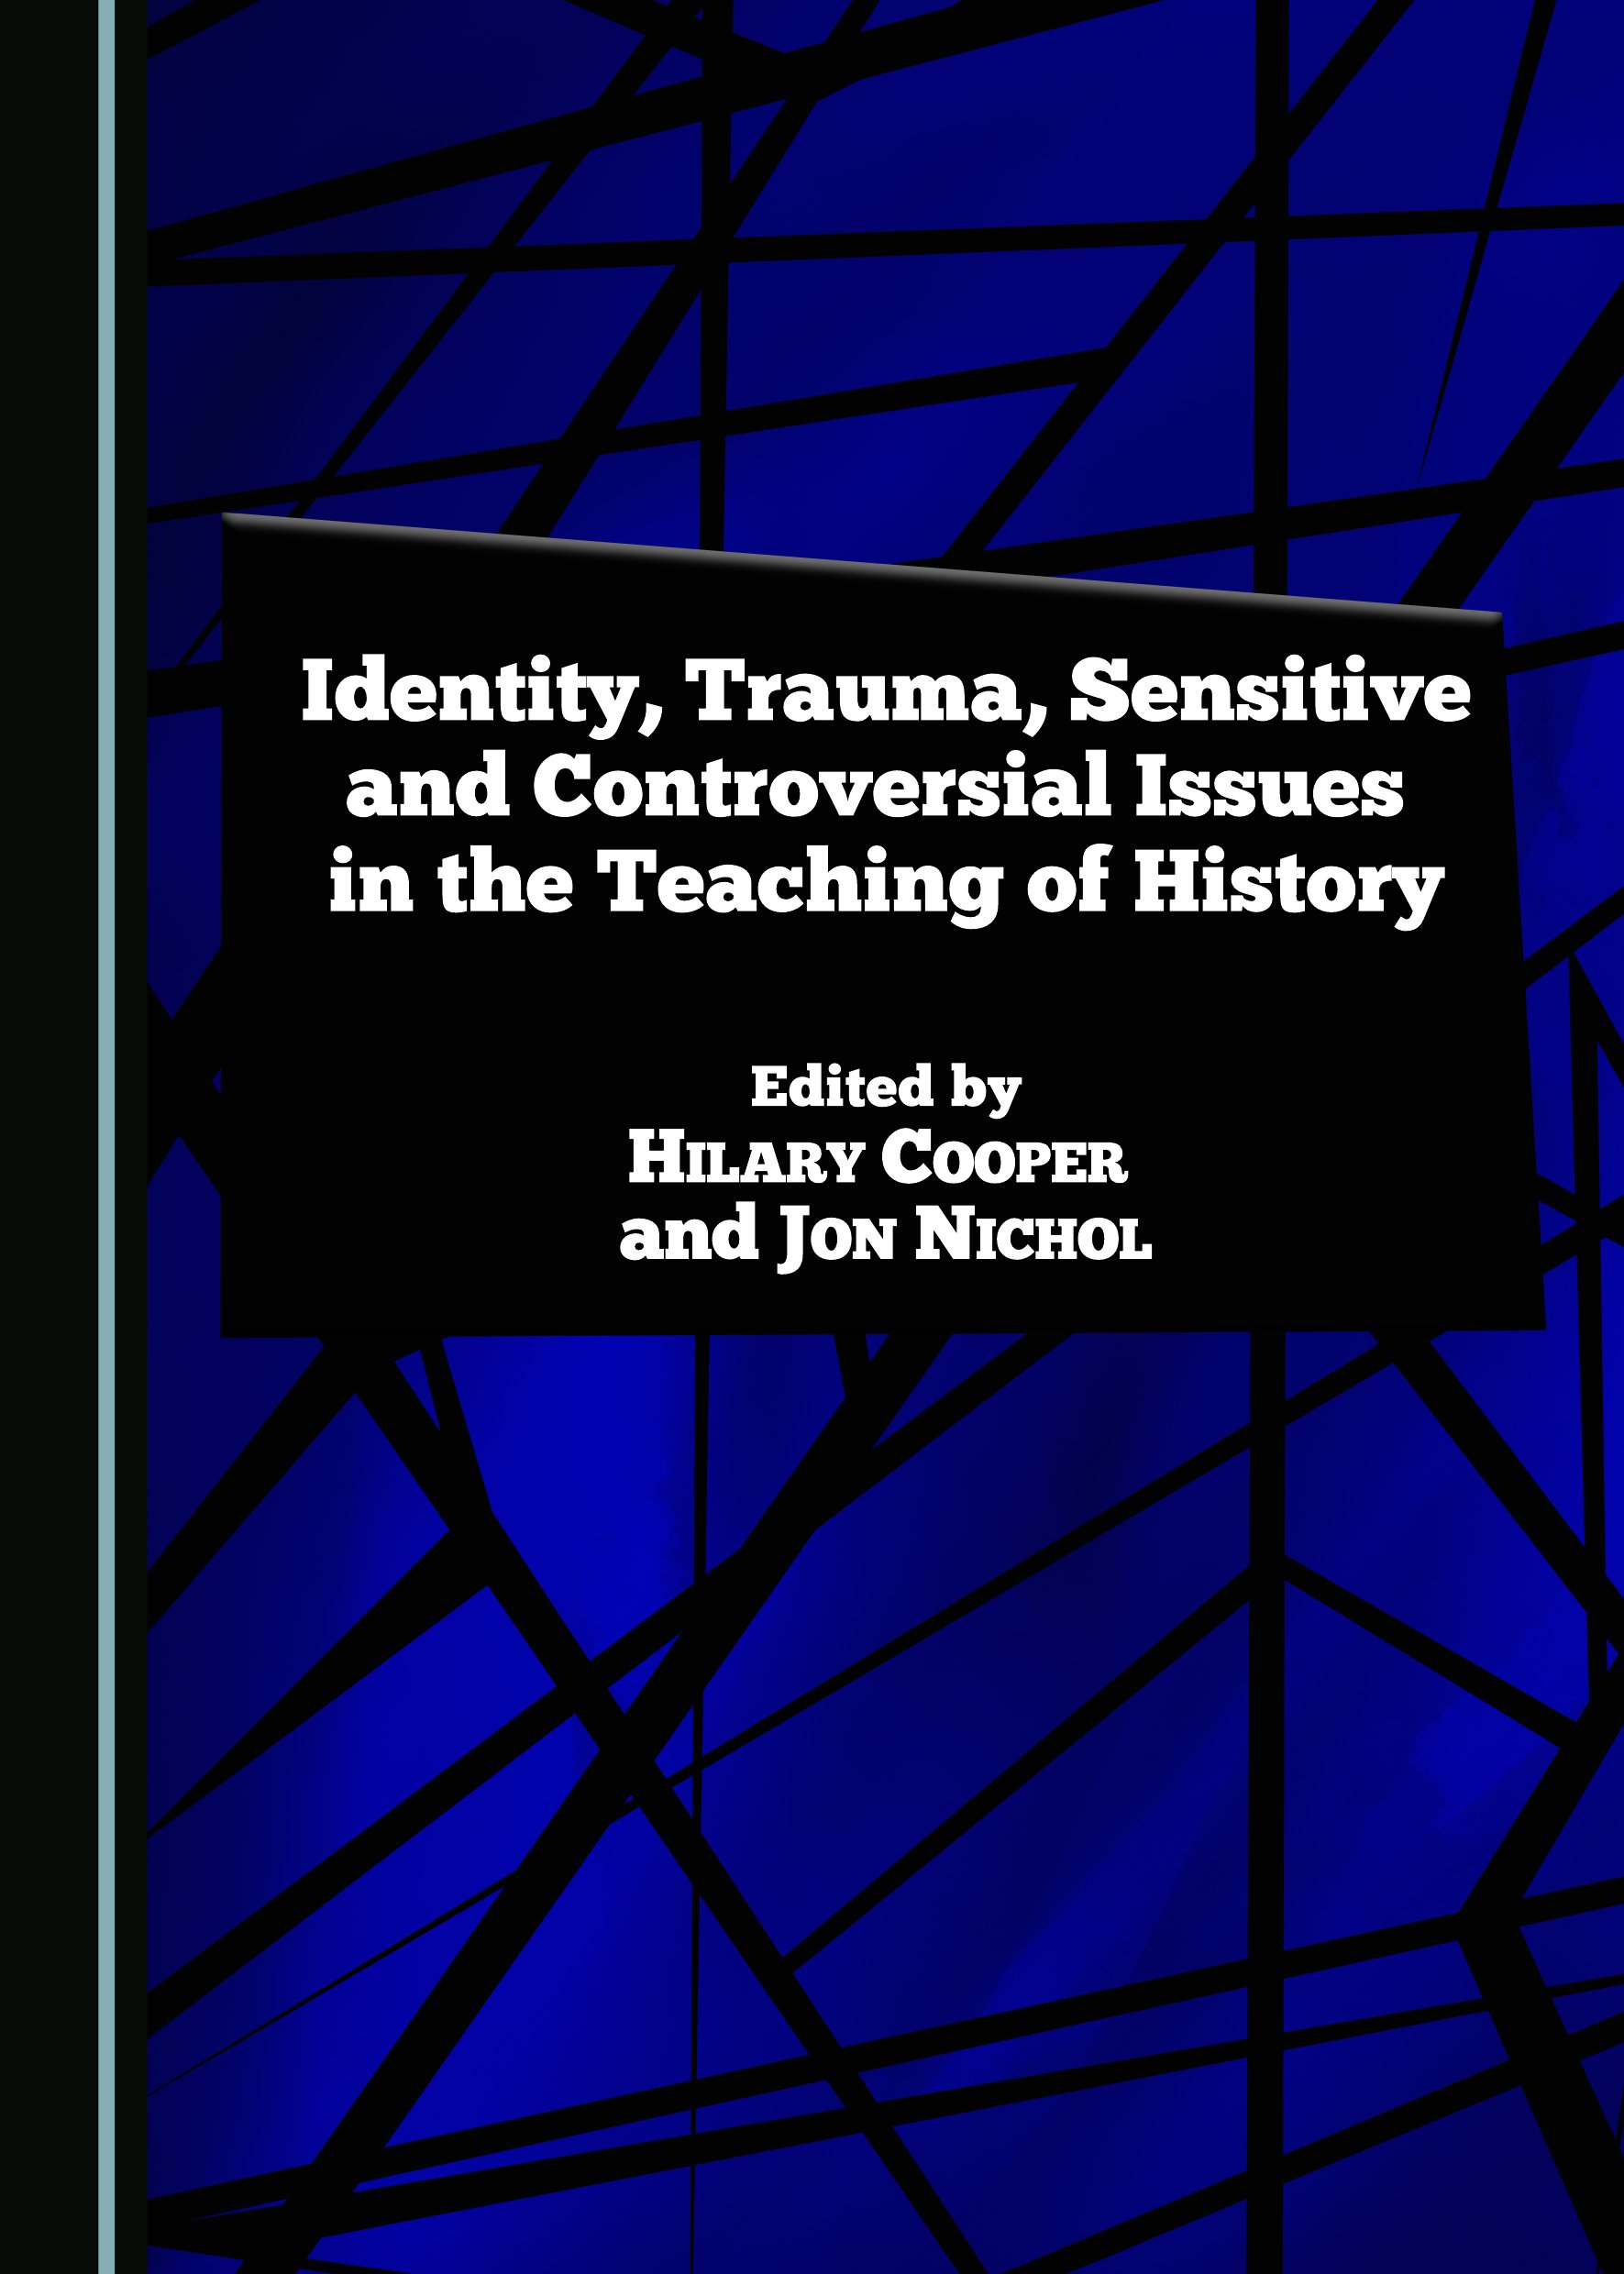 Identity, Trauma, Sensitive and Controversial Issues in the Teaching of History